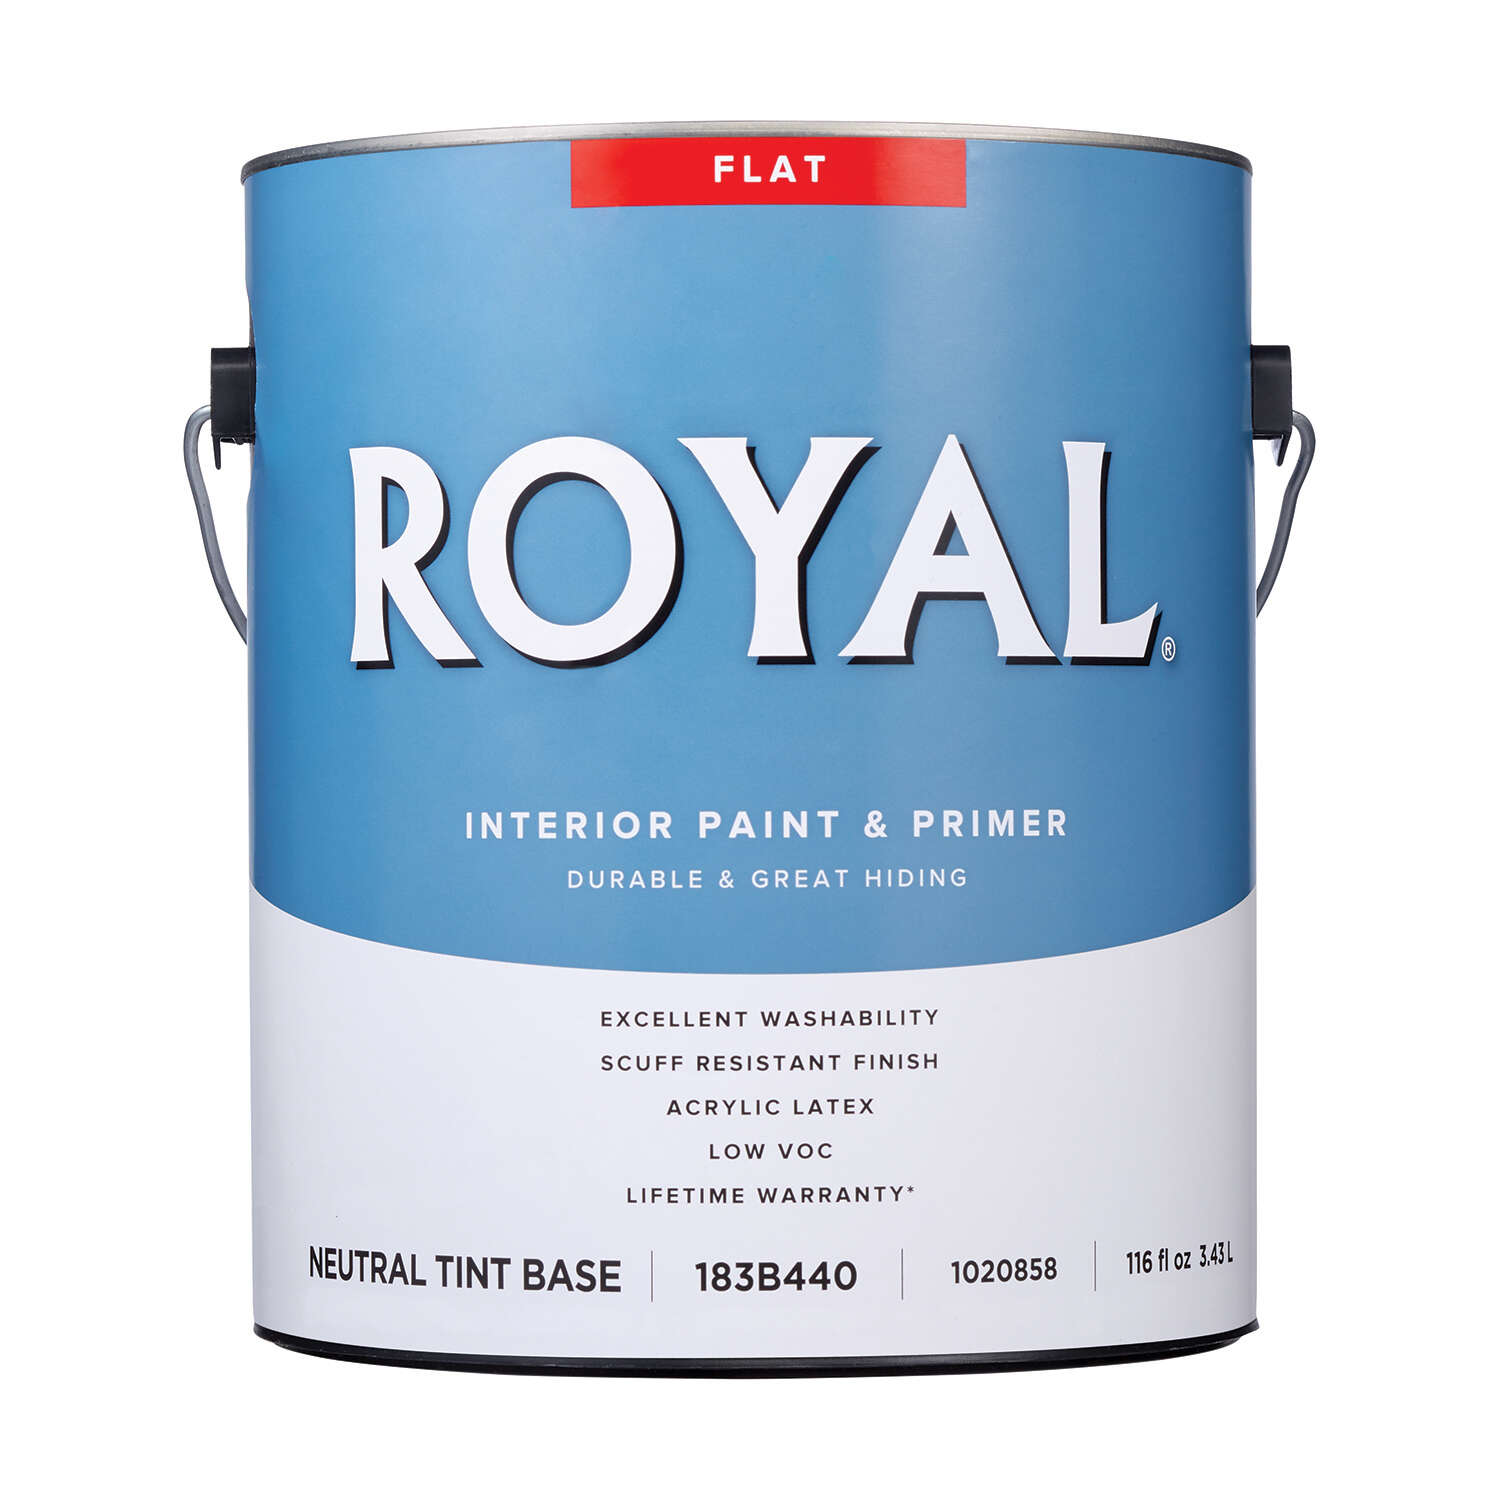 Royal Flat Tint Base Neutral Base Paint and Primer Interior 1 gal.